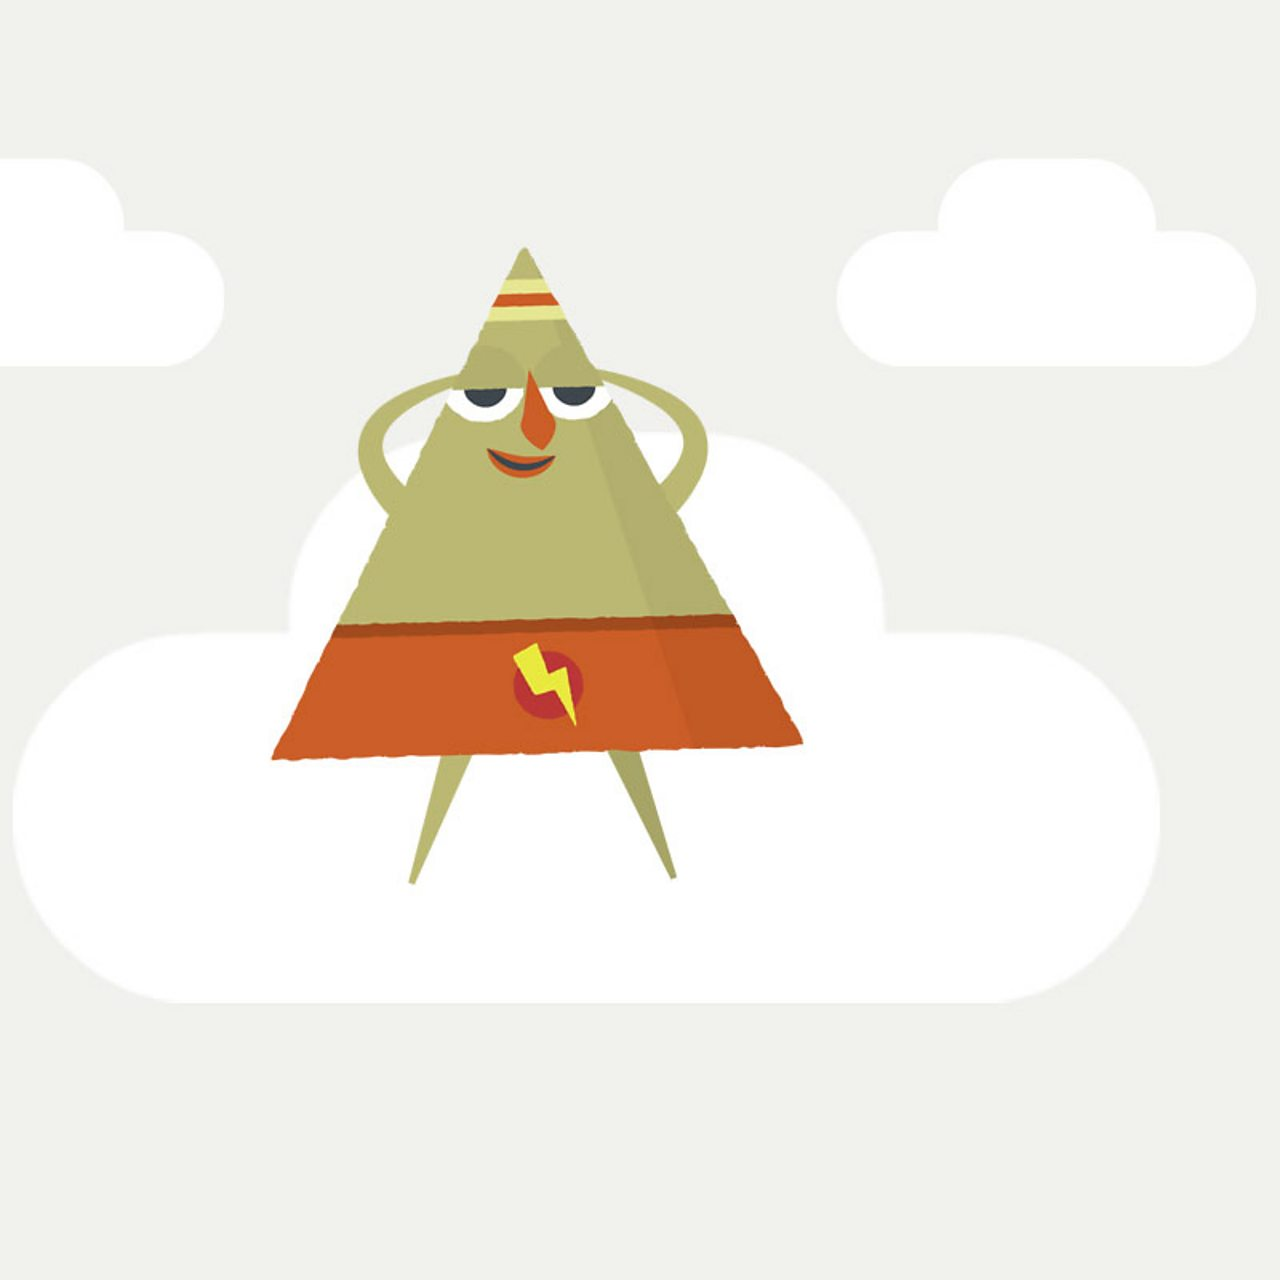 Triangle character floating on cloud